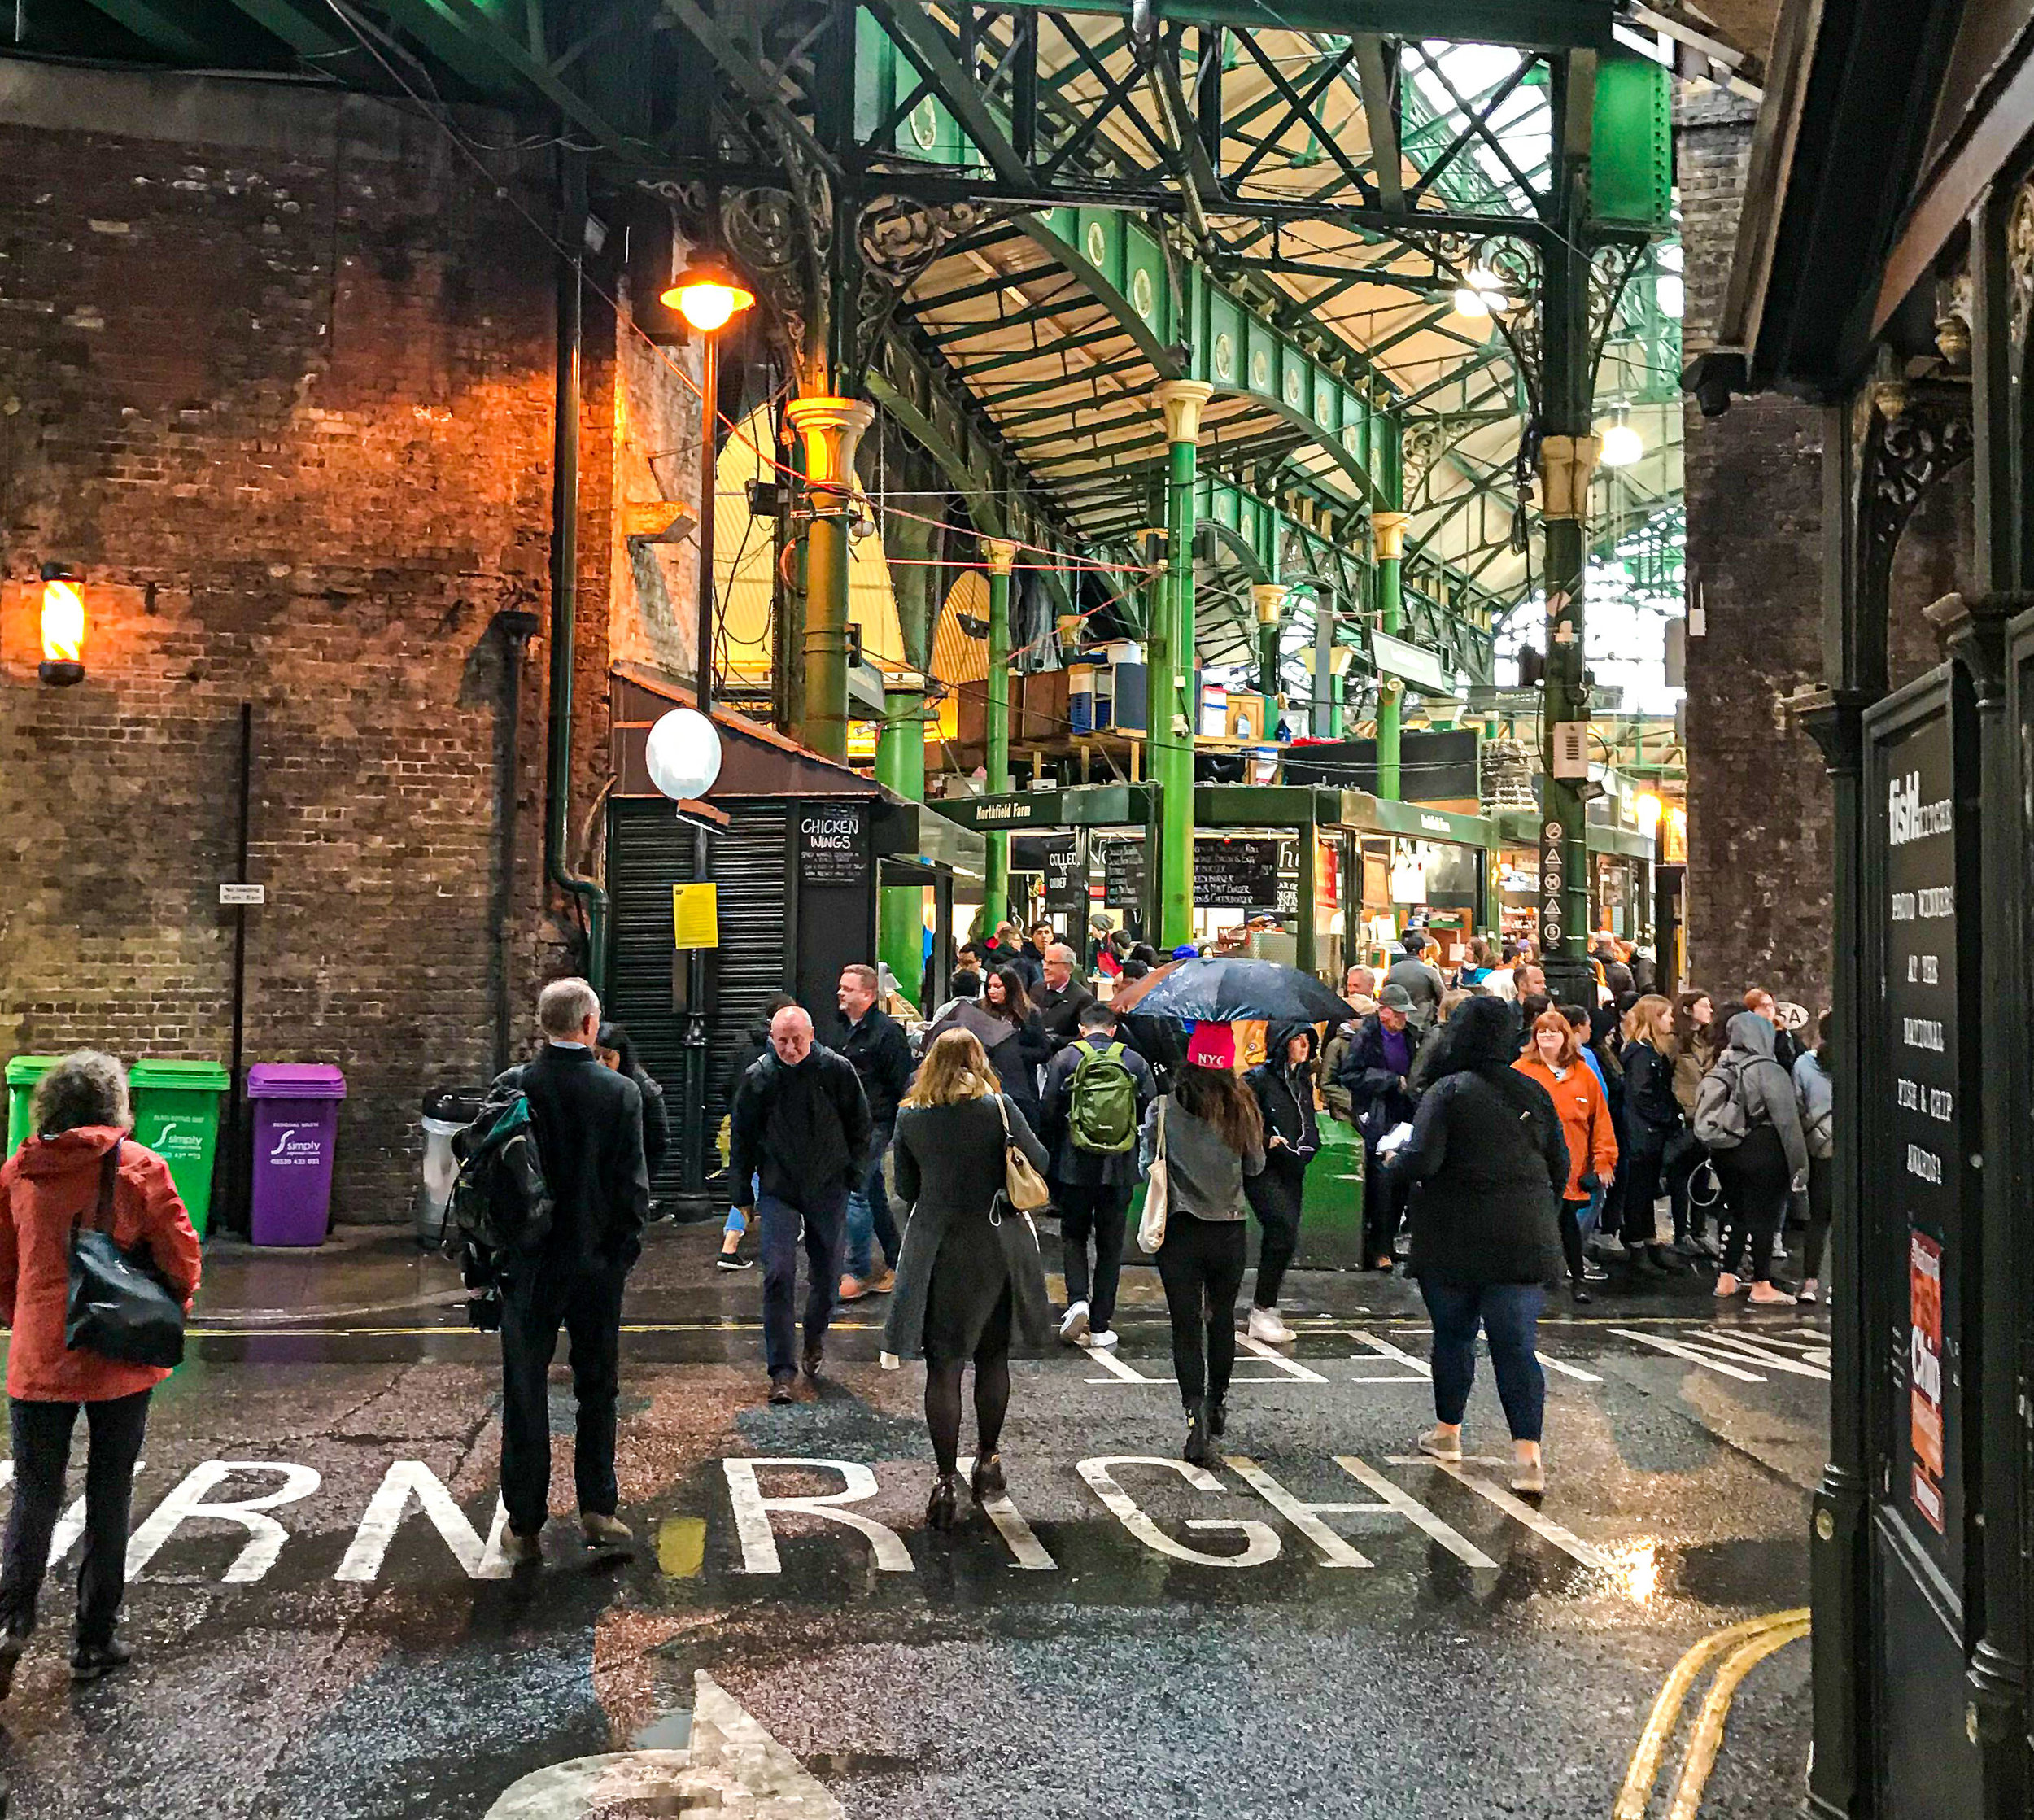 One entrance to Borough Market. It's like an outdoor version of NYC's Chelsea Market.